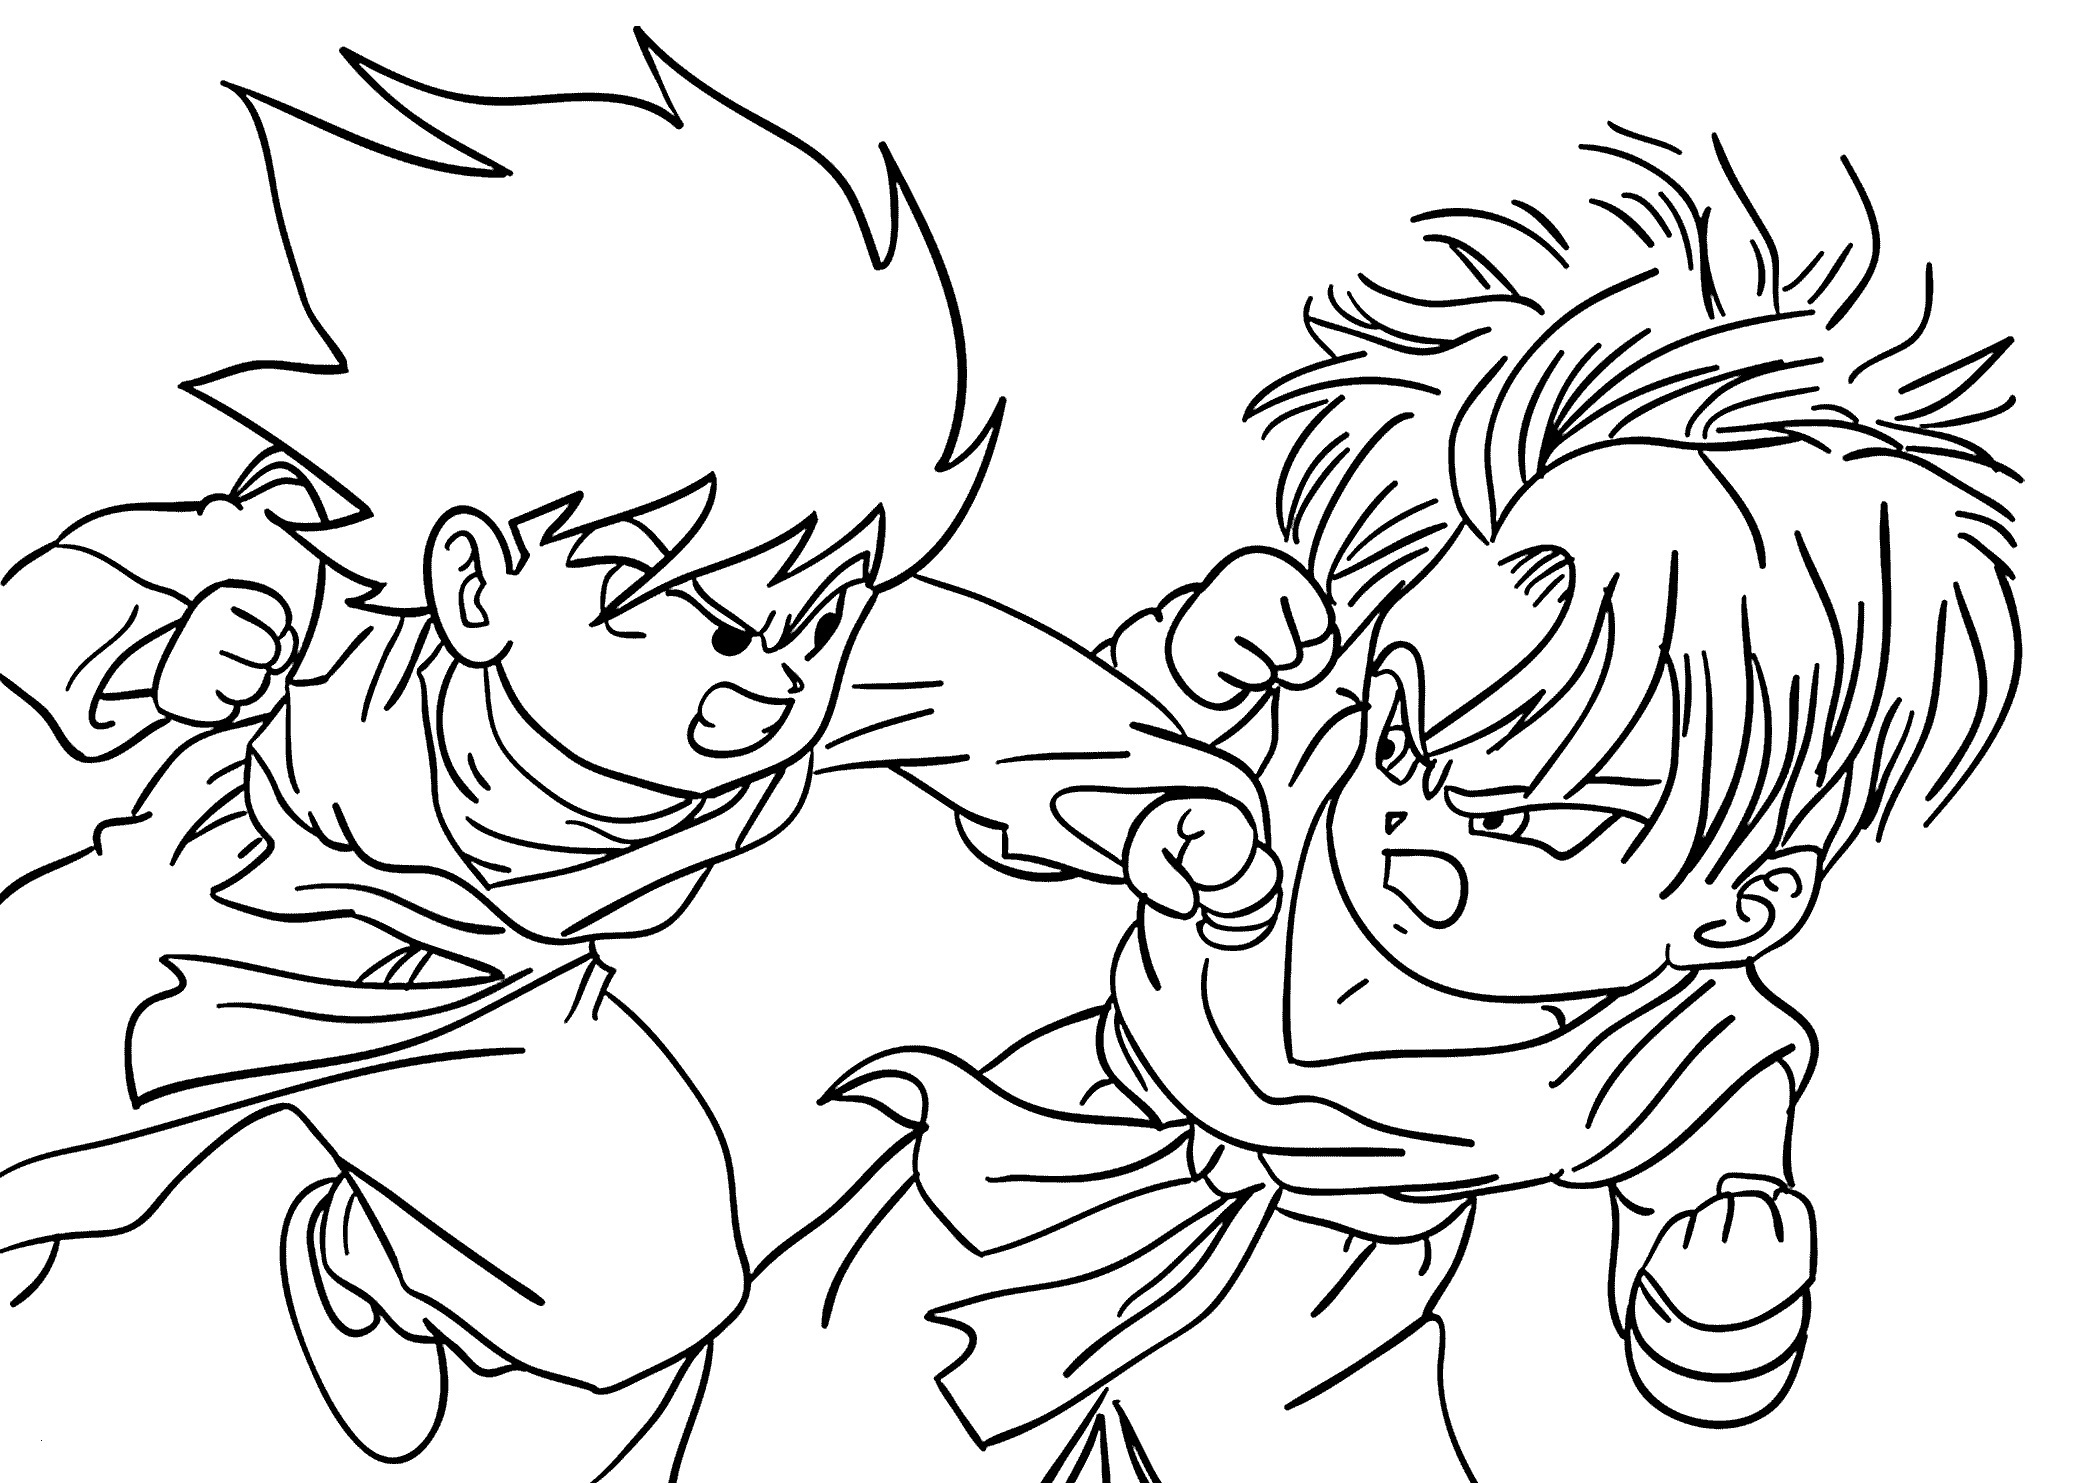 Dragon ball z coloring pages dbz coloring pages goku dragon ball coloring pages fabulous dragon